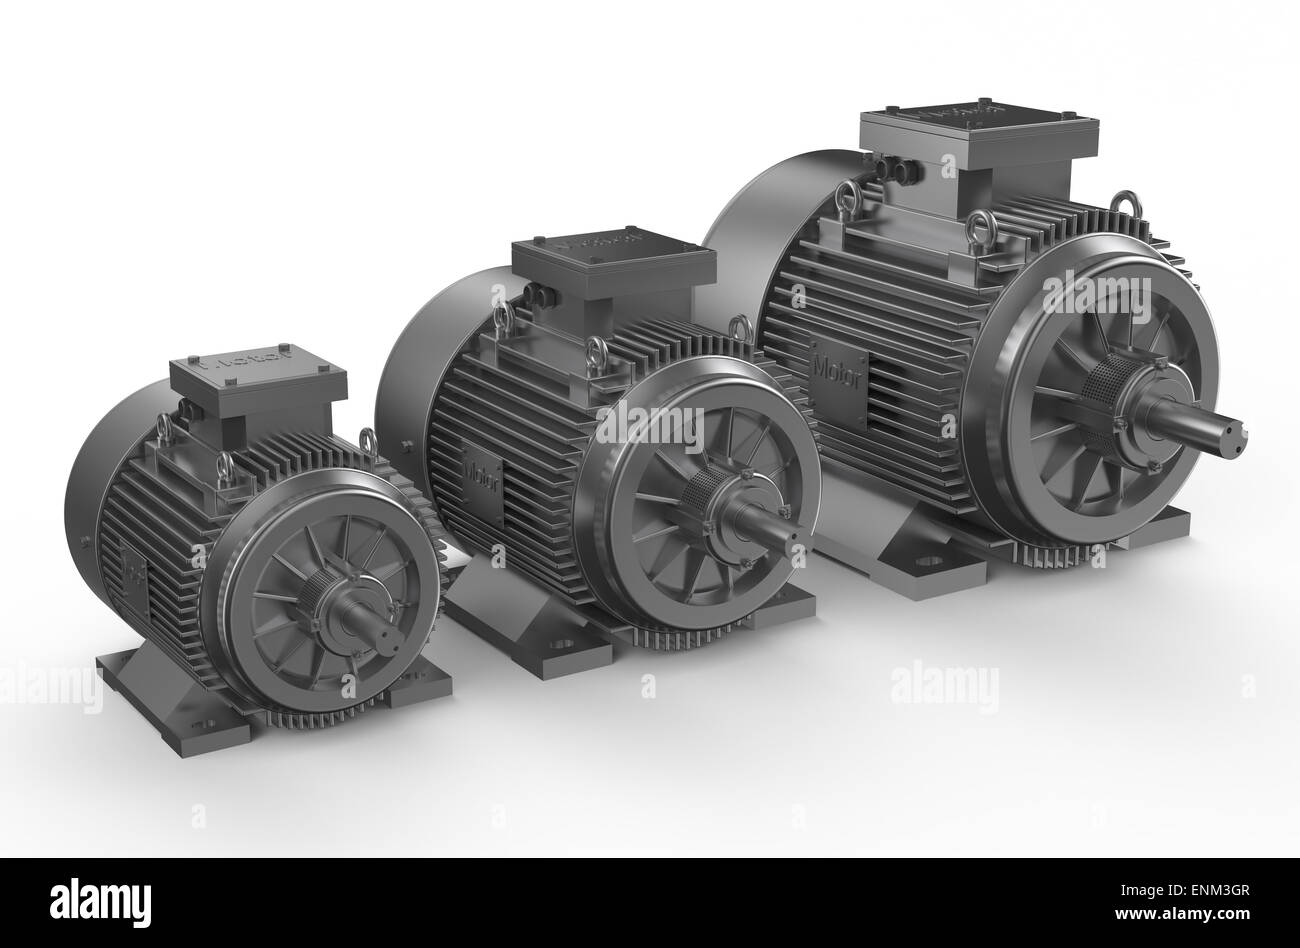 Spindle Motor Stockfotos & Spindle Motor Bilder - Alamy